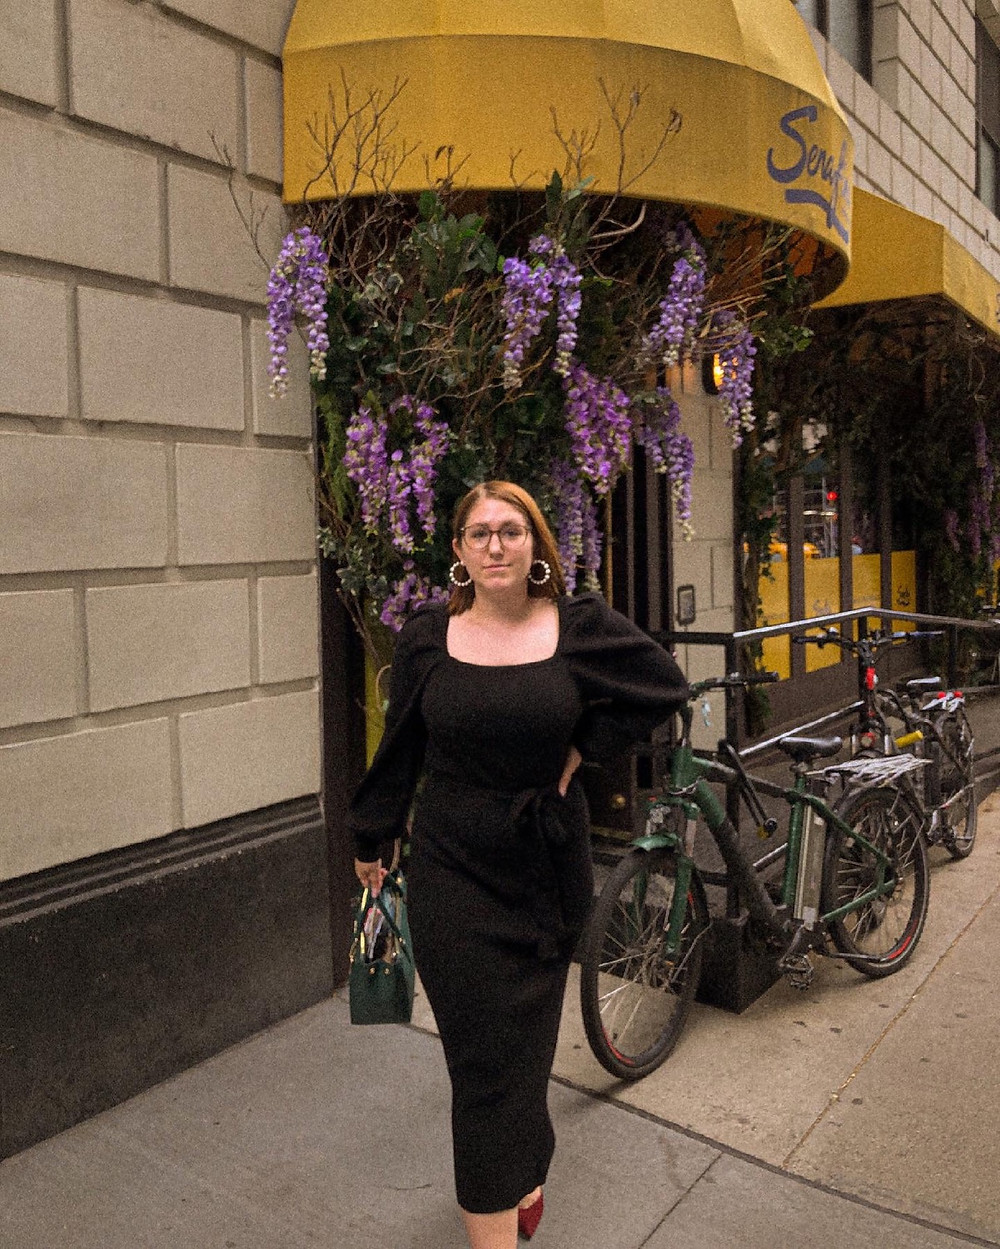 Taylor outside restaurant with purple vine flowers, wearing a black maxi dress with square neckline..